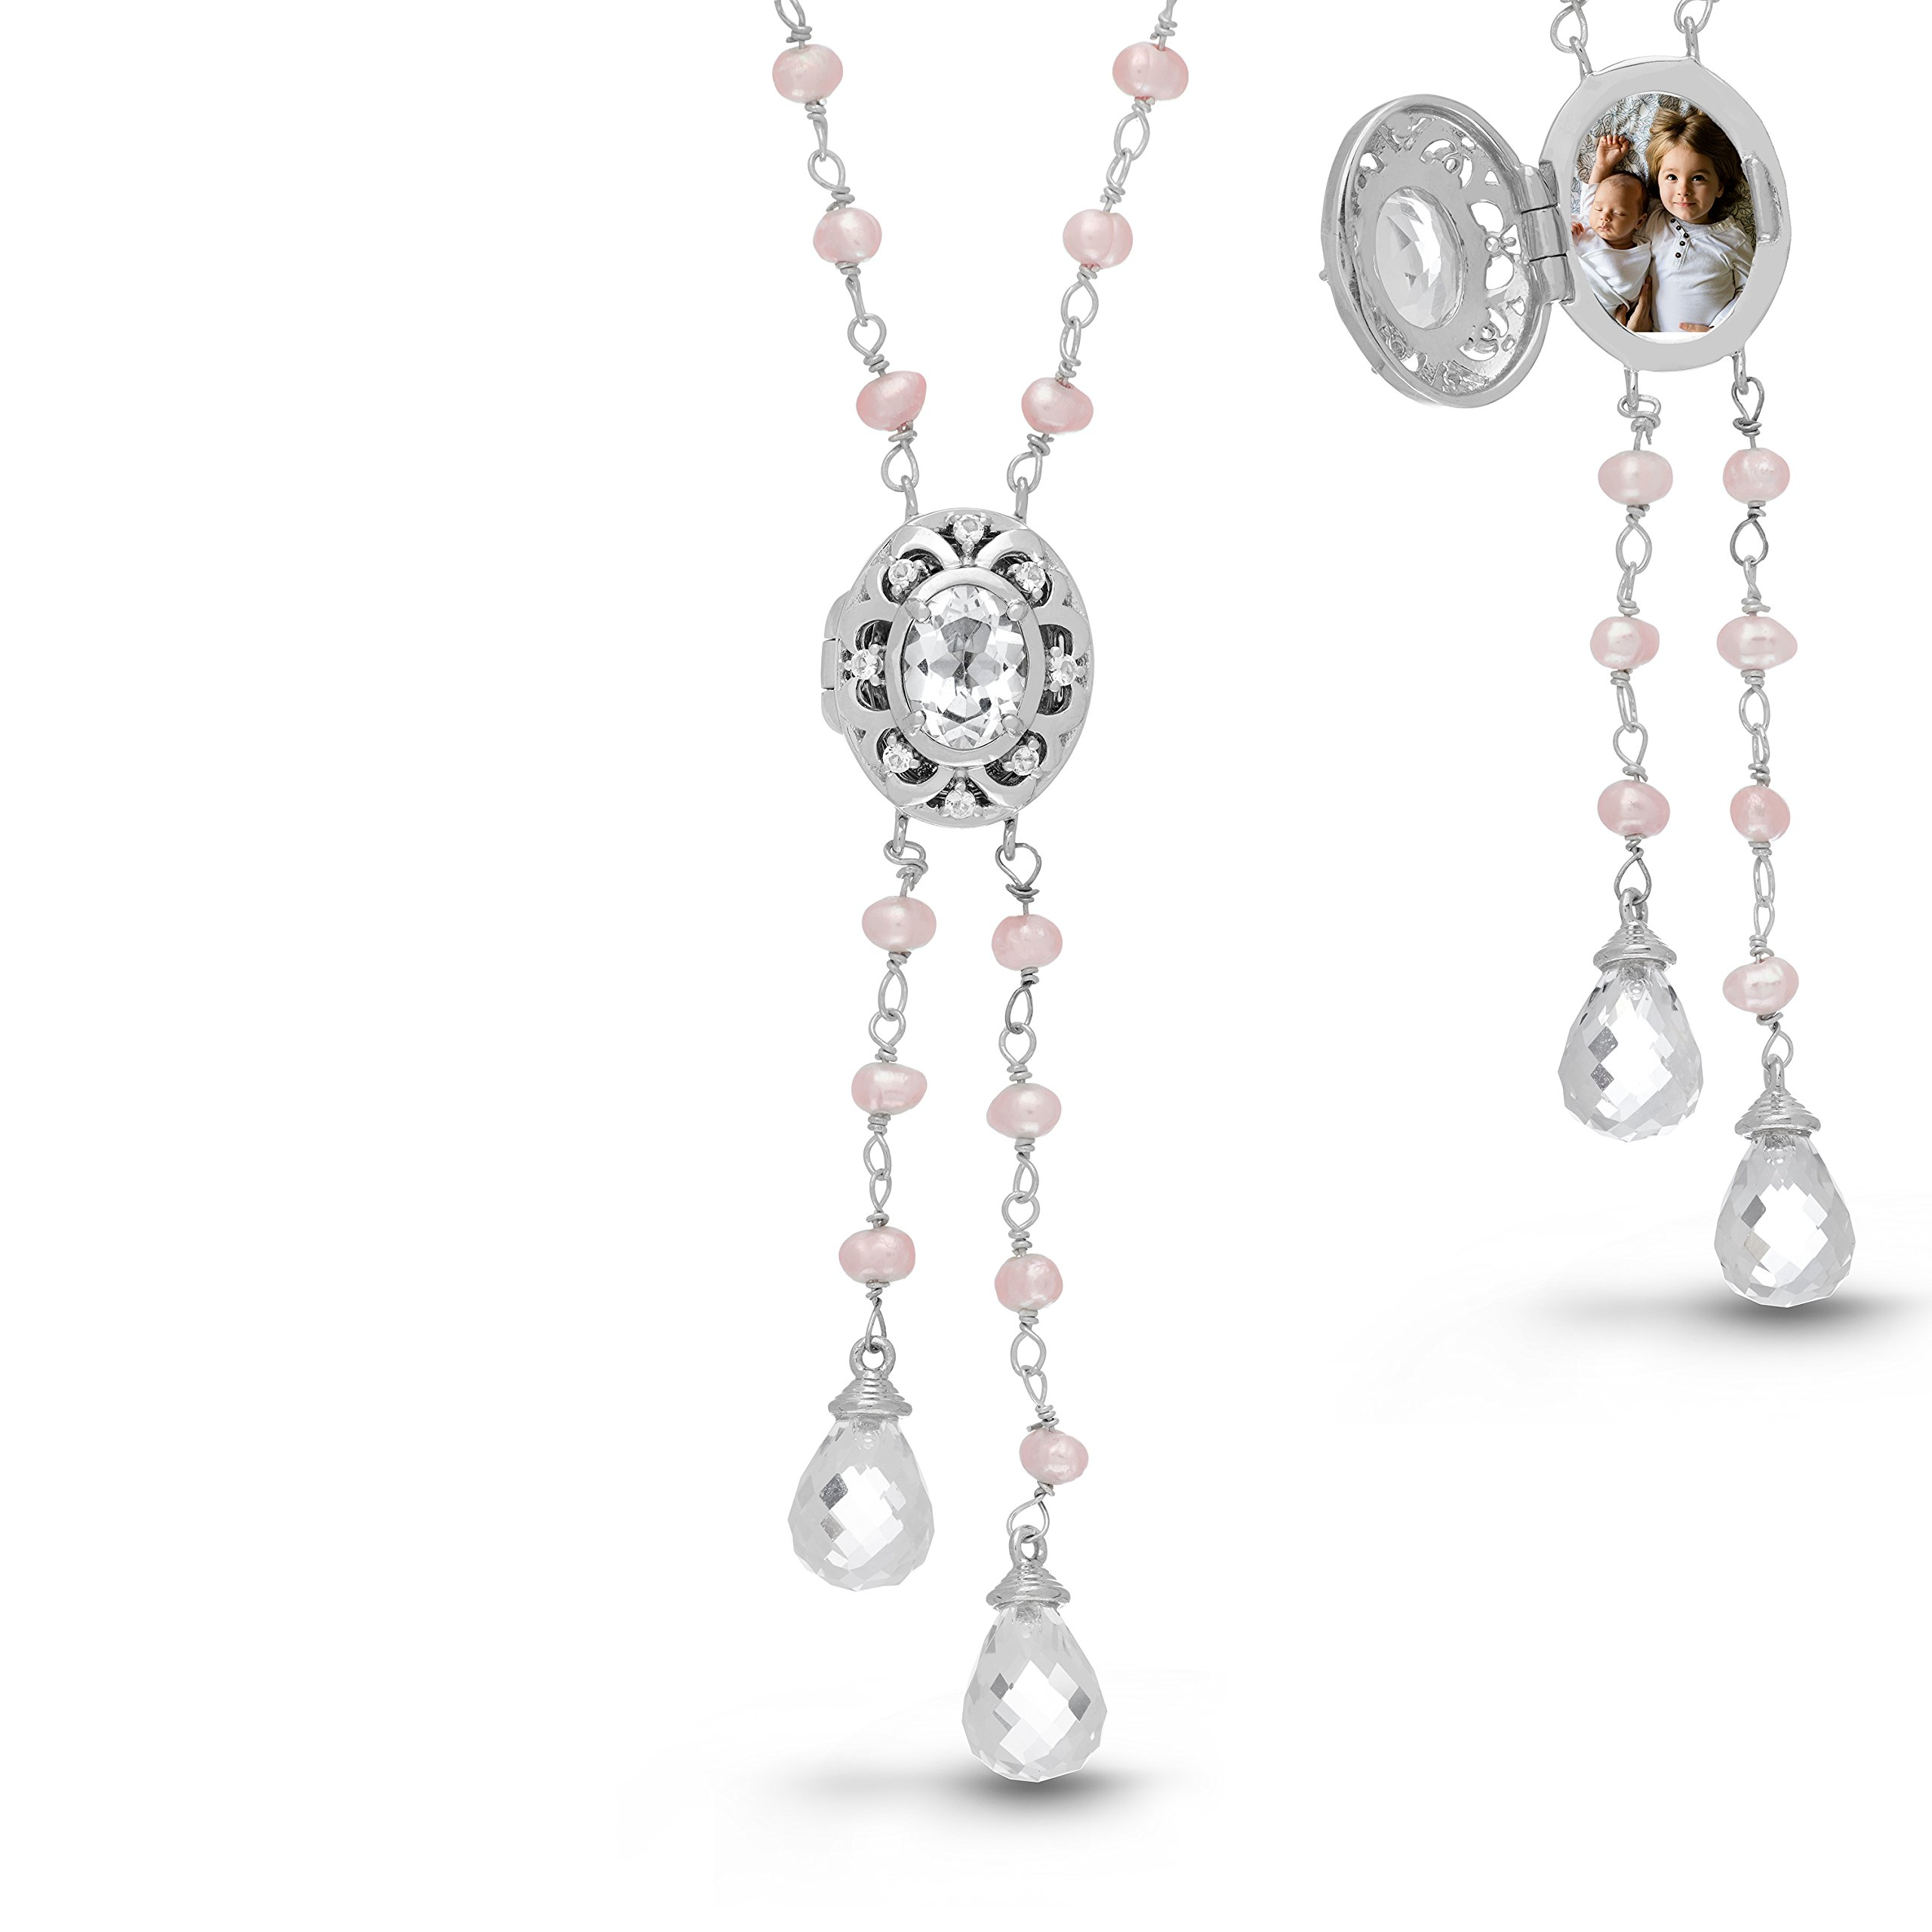 With You Lockets-Sterling Silver-Custom Photo Lariat Locket Necklace-That Holds Pictures For Women-The Cora